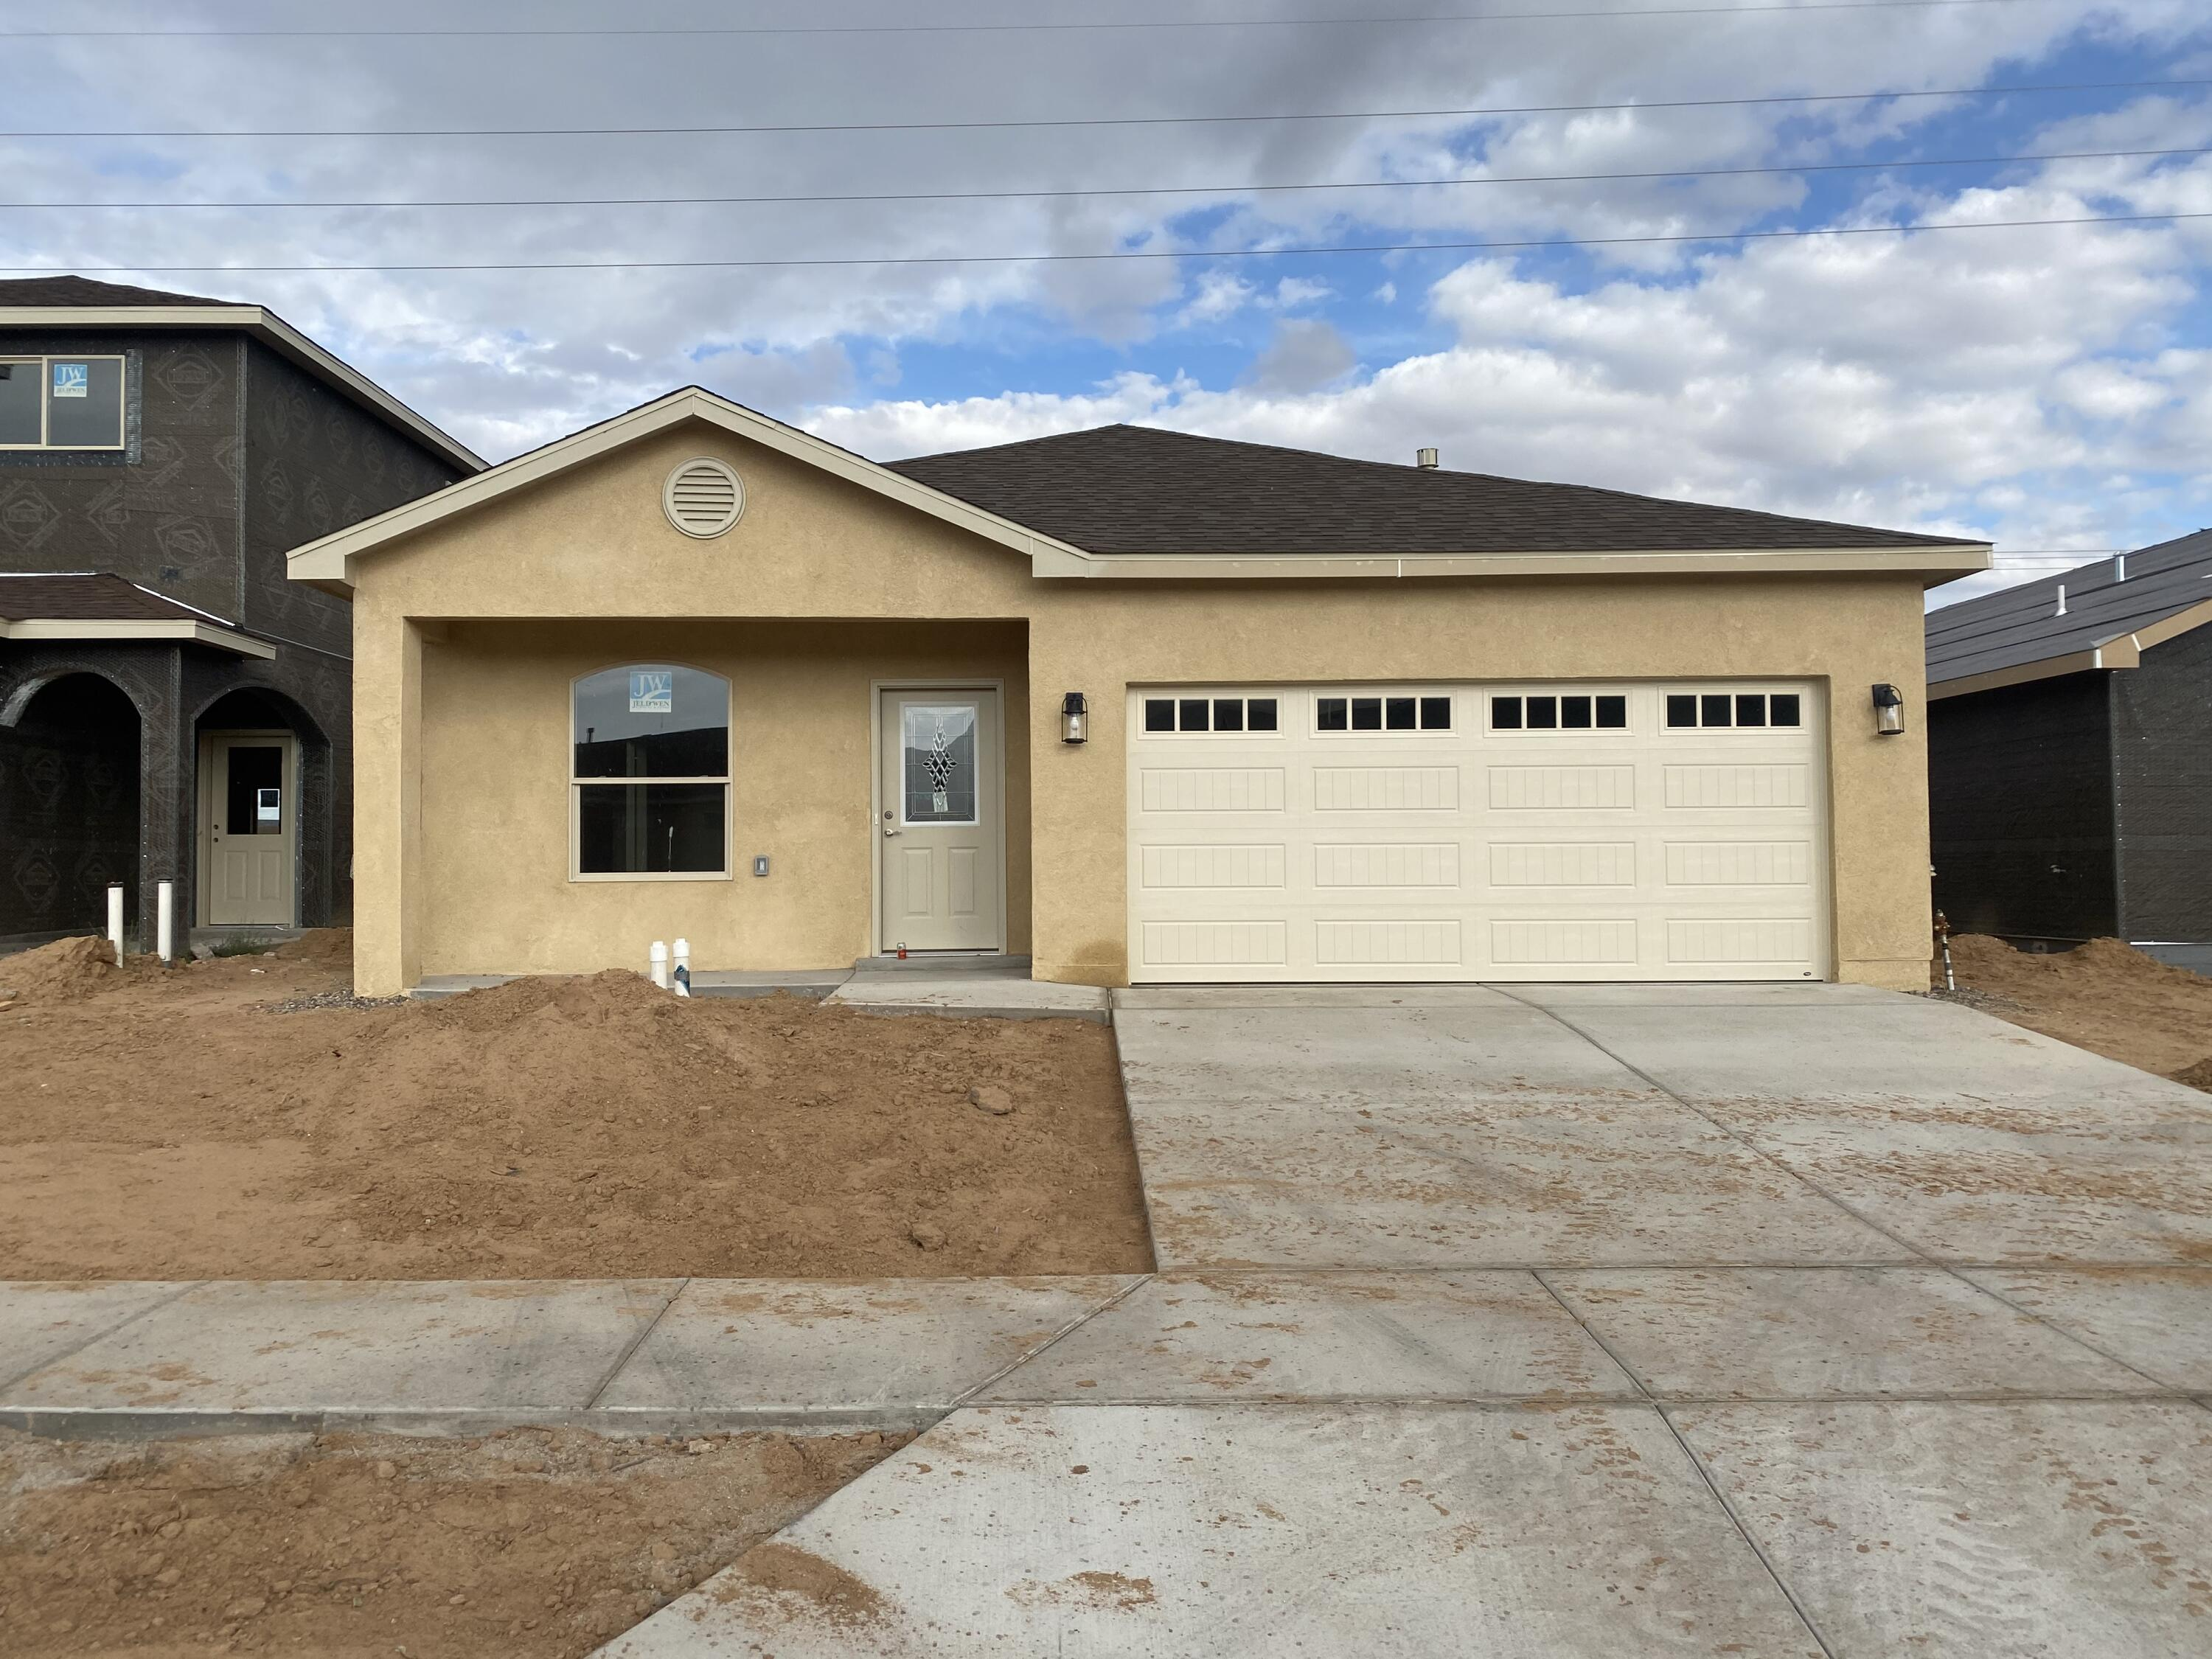 Welcome to this new construction Kalahari floor plan by Mile High Homes. This spacious 3 bedroom, 2 bathroom home is sure to impress. Features include a cozy gas log fireplace,  tile in all areas with the exception of carpet in the bedrooms, granite counter tops, custom cabinetry and a large pantry. Make an appointment to see your future home today!